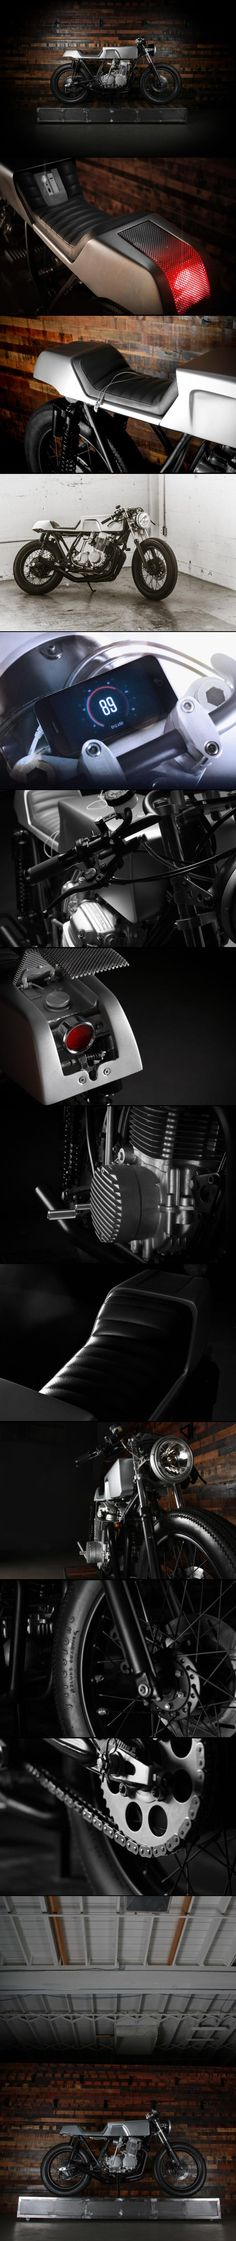 """DAILY INSPIRATION: Honda """"DCB750"""" by Toby Grubb and Justin Lewis – Moto Mucci"""